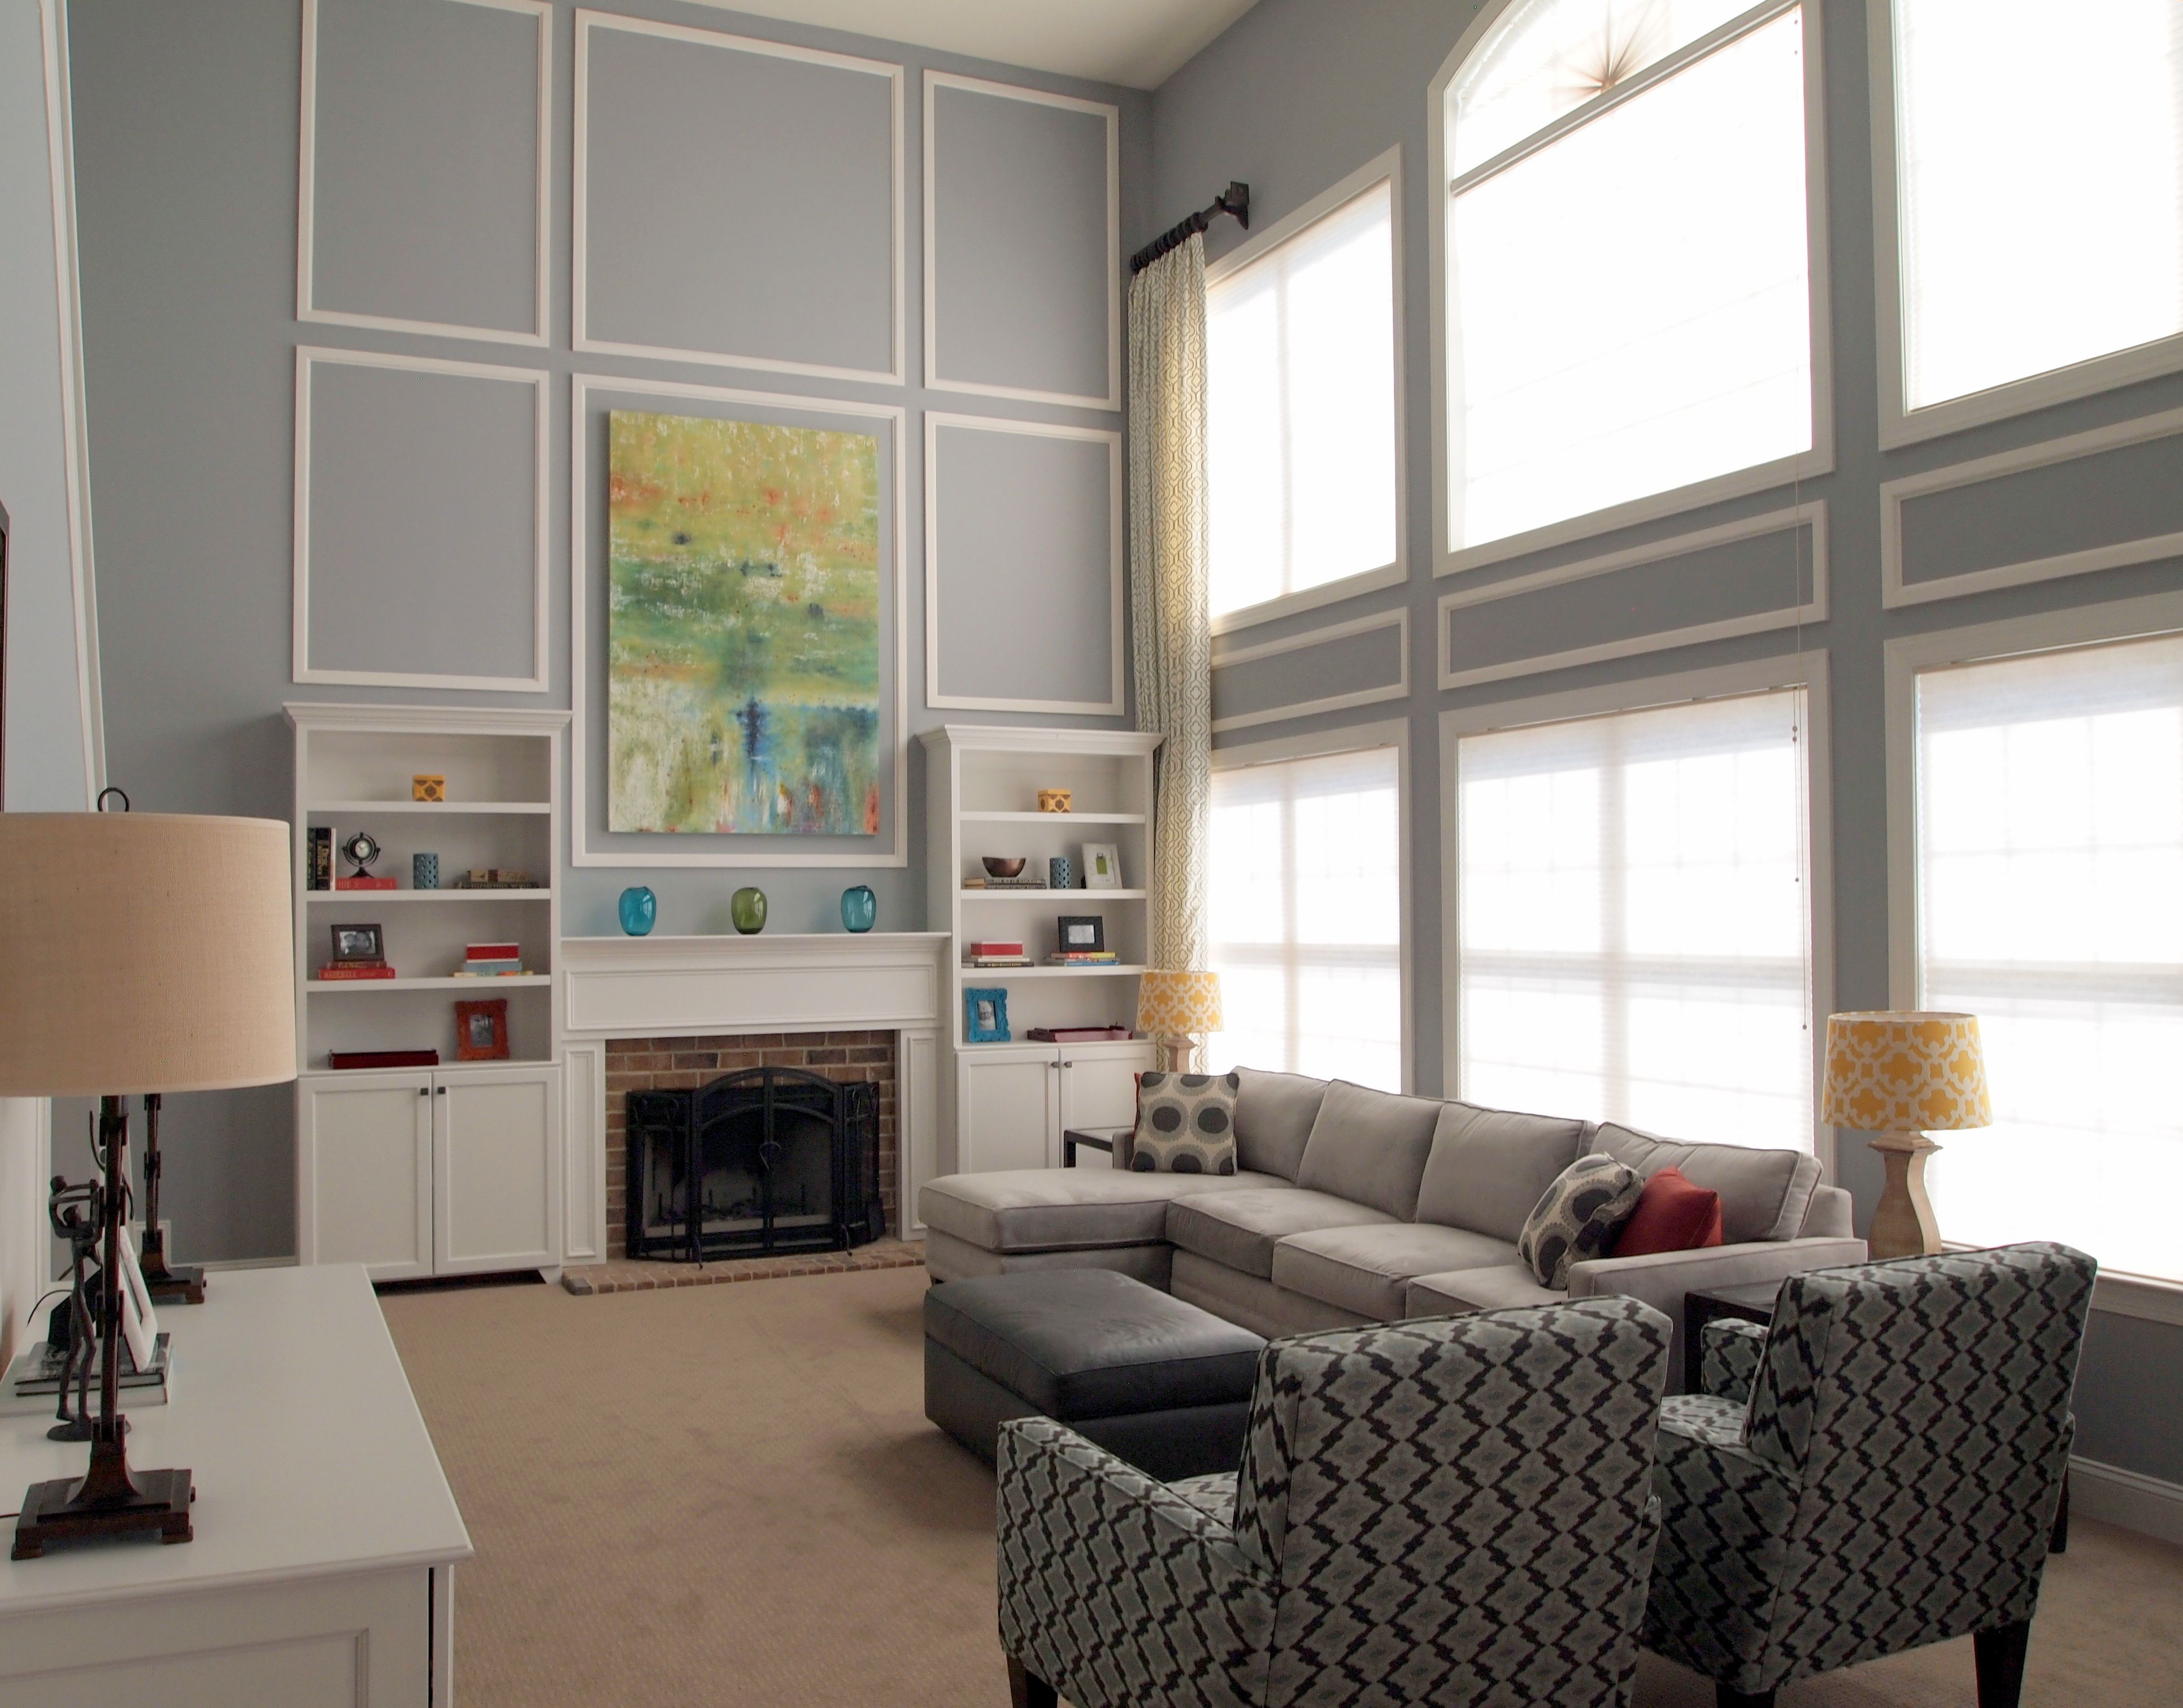 Calming Colors For Living Room Selection Photo Gallery  Interior Adorable Living Room Design Photos Gallery Design Ideas